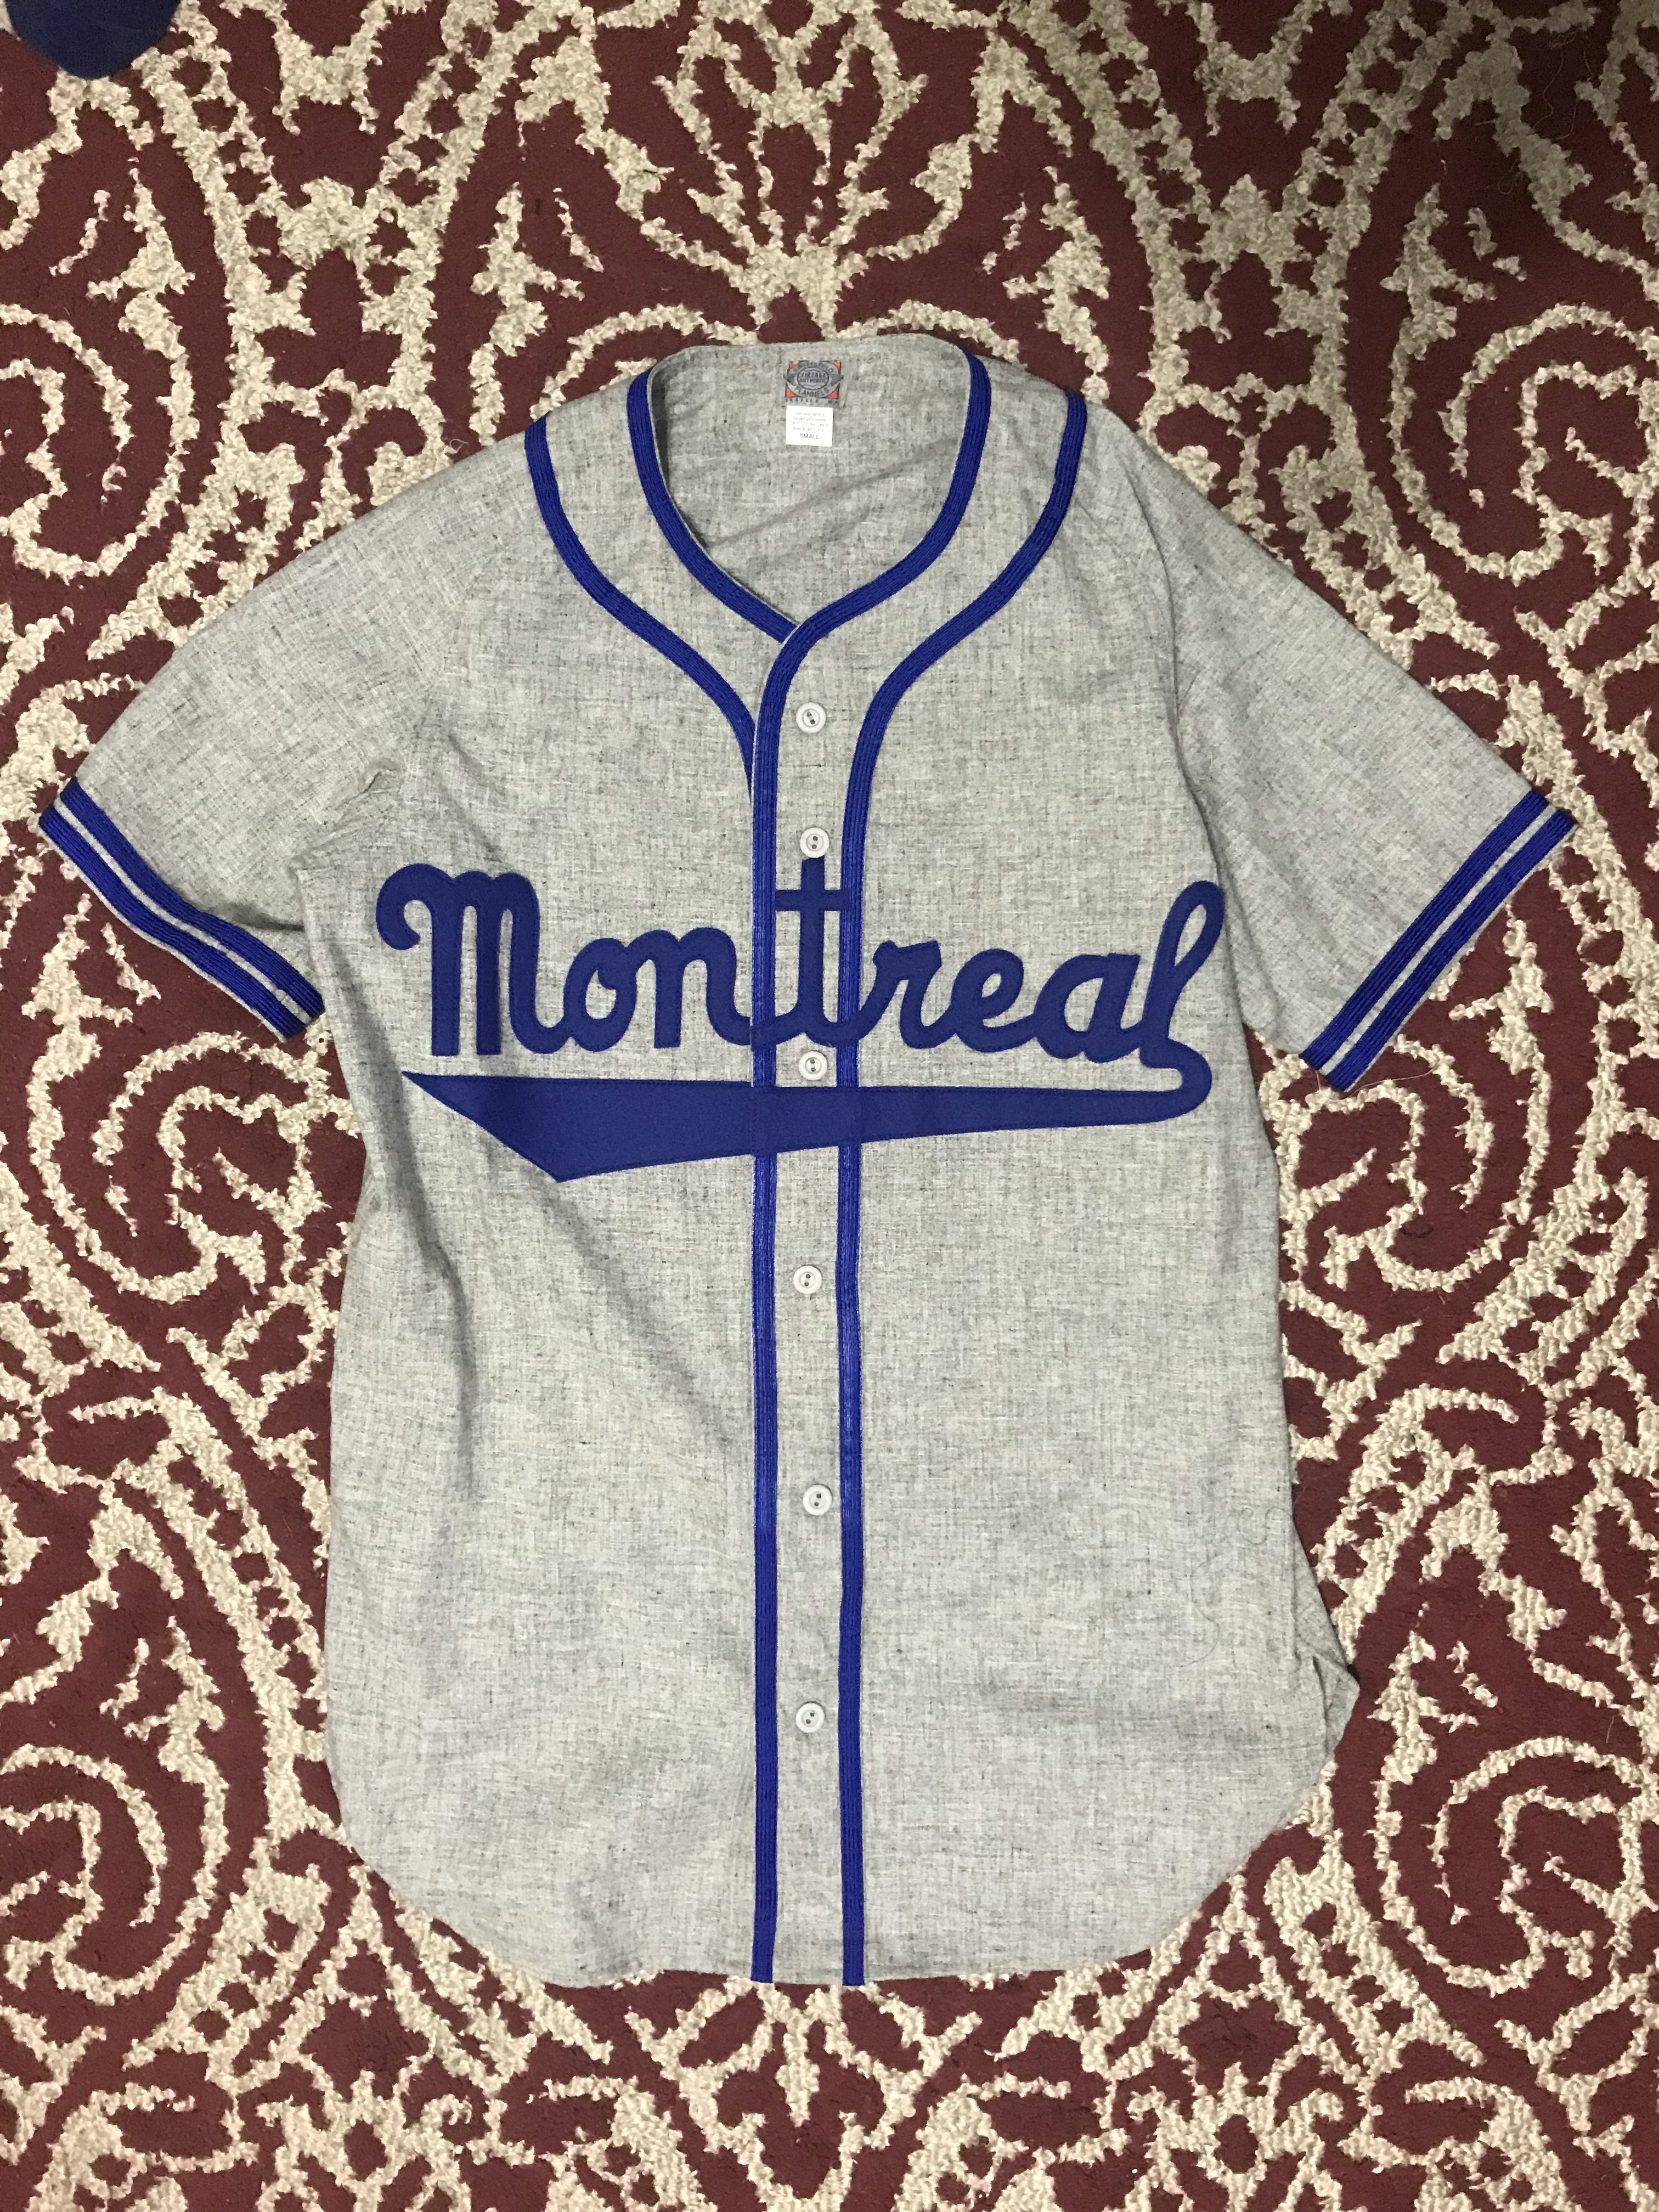 88f0a6d01 Ebbets Field Flannels Montreal Royals 1946 Road Jersey Size s ...